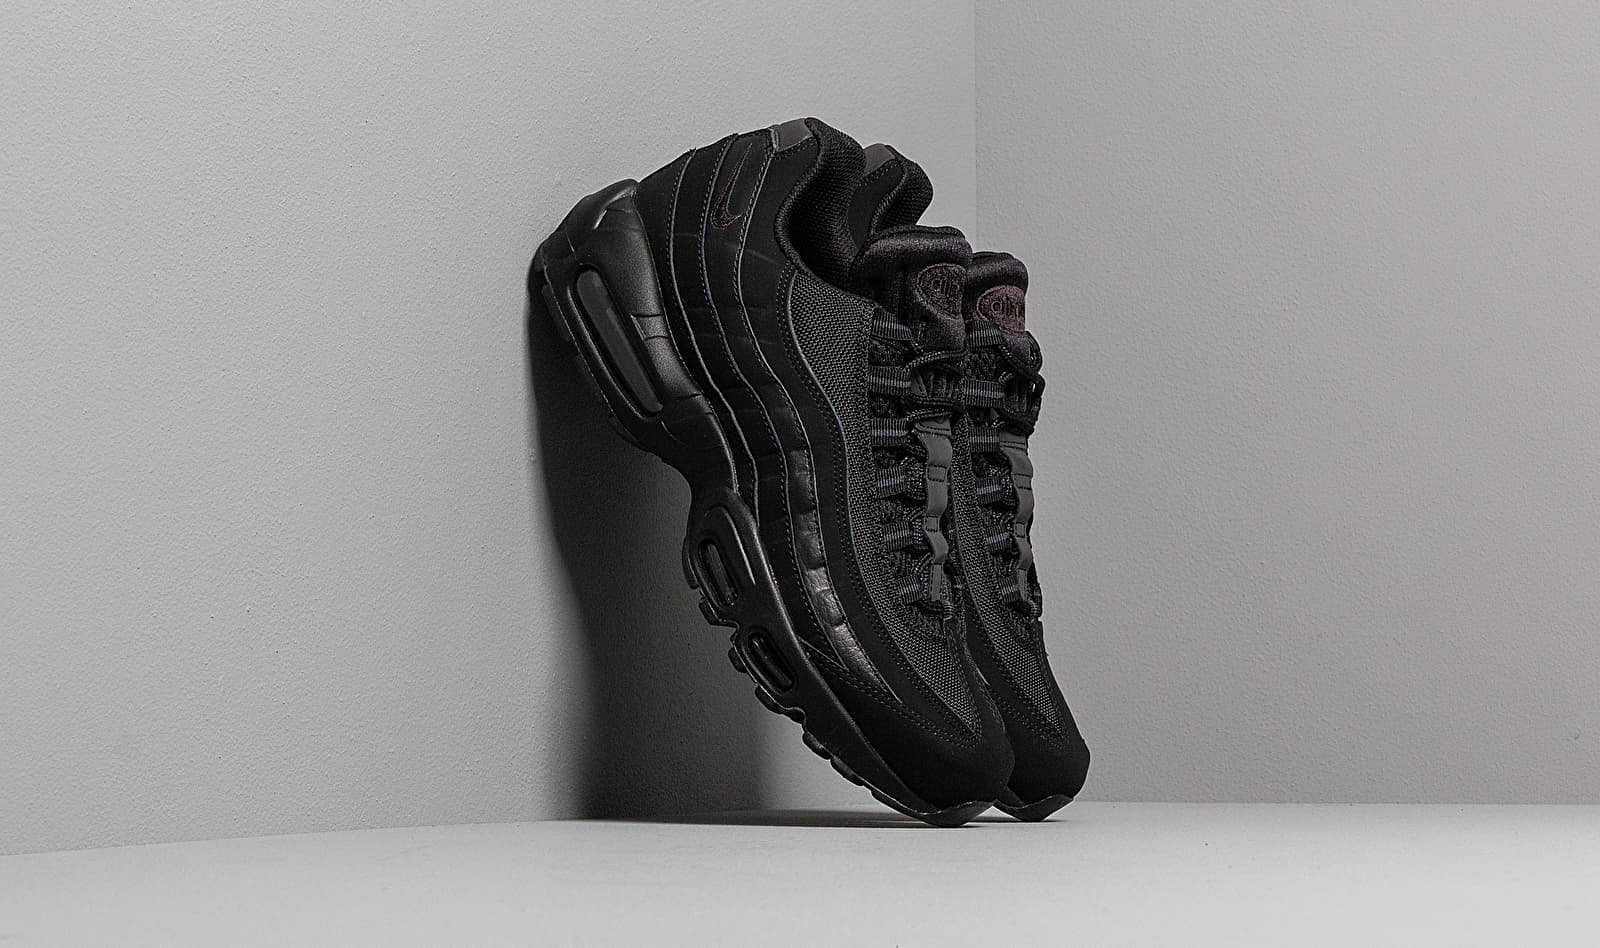 Nike Air Max '95 Black/ Black-Anthracite EUR 45.5